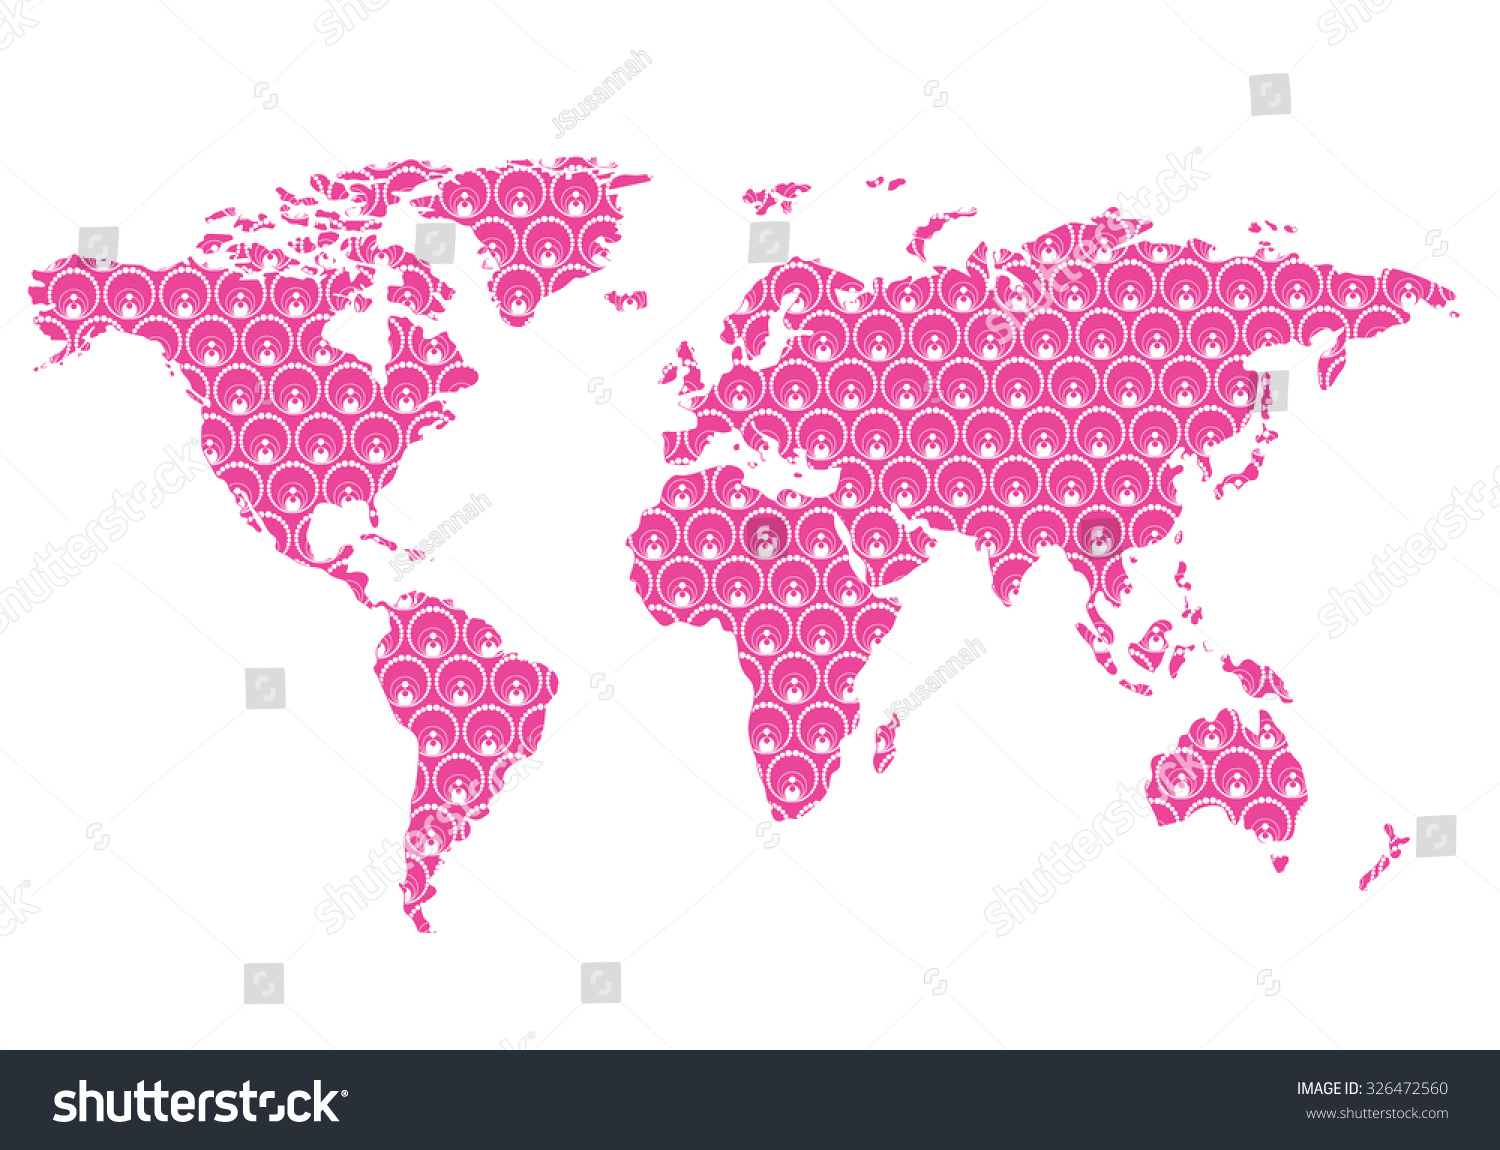 Beautiful world map floral pattern wall stock vector 326472560 beautiful world map with floral pattern wall stickereasy to change colors gumiabroncs Images